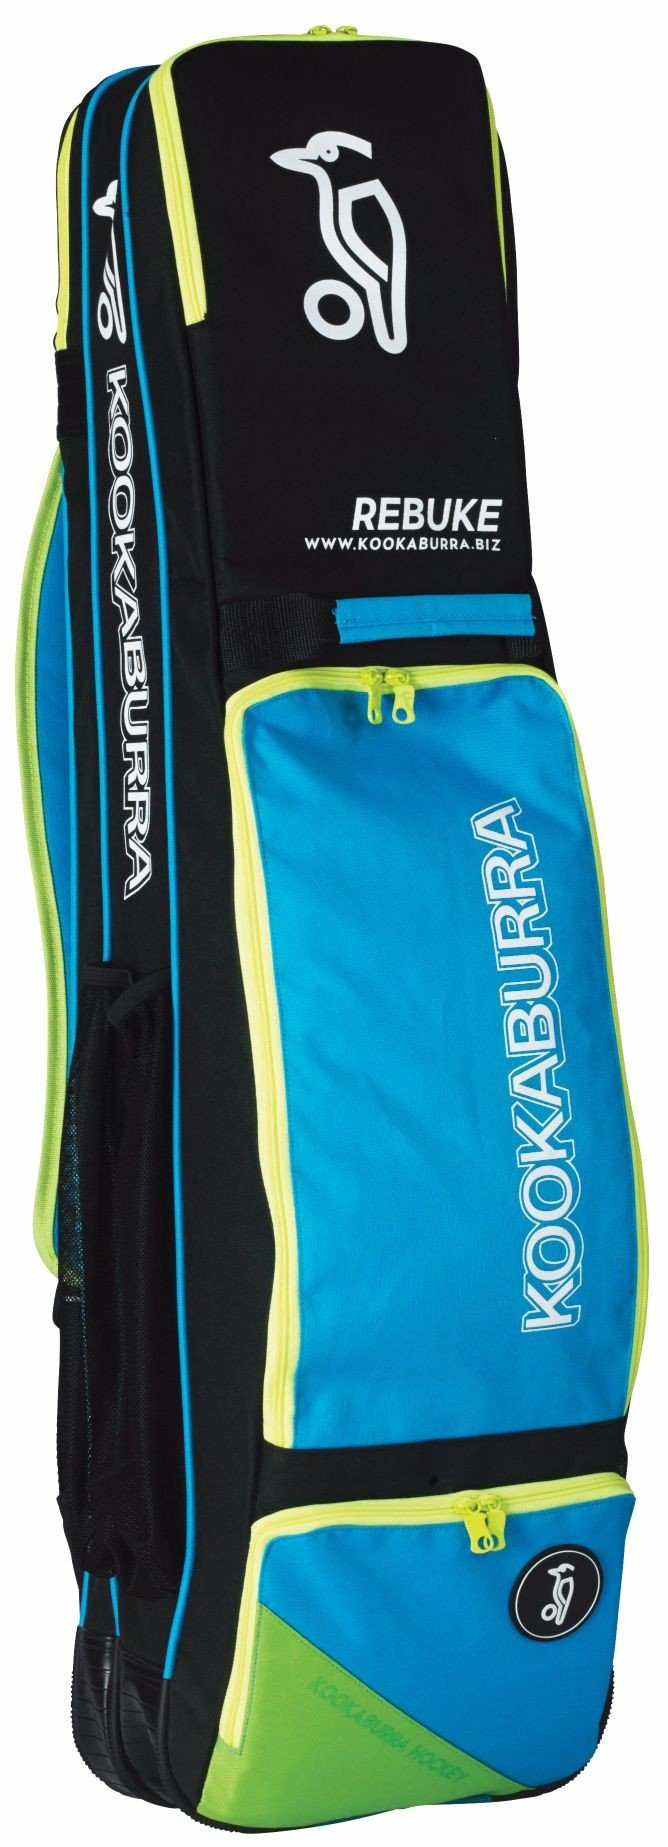 2016/17 Kookaburra Viper Hockey Bag